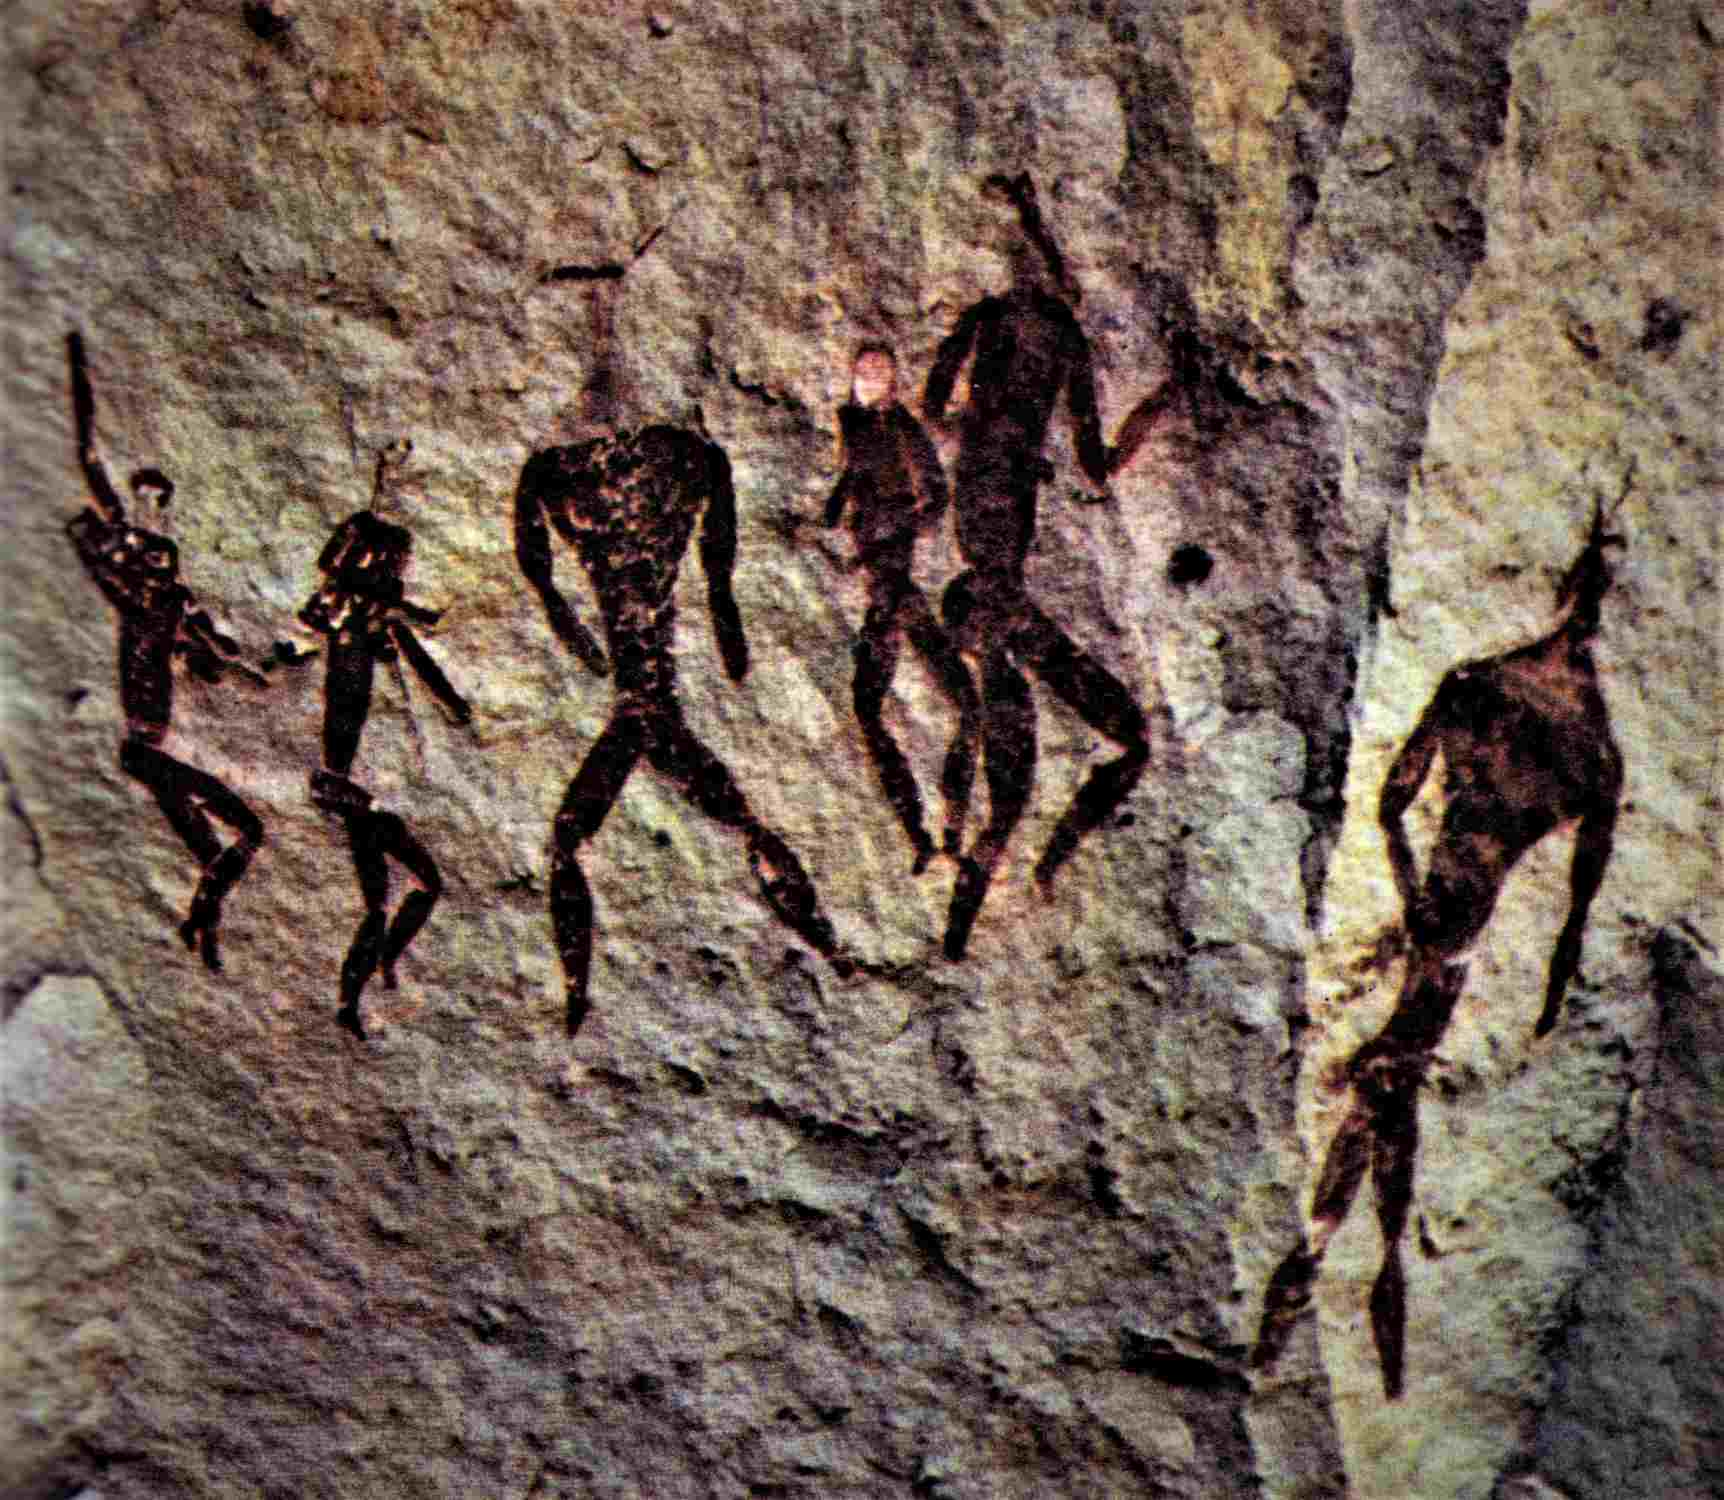 """painting in the Tabamyama Rock Shelter in the Drakensberg Mountains of South Africa graphically illustrates the """"Igigi Rebellion"""". The three Beings with there backs to us are the """"Igigi"""" -- the Anunnaki, second from the left can be identified by the """"Hand Bag"""" on his right arm. This painting appears to suggest a """"Conflict Situation""""."""